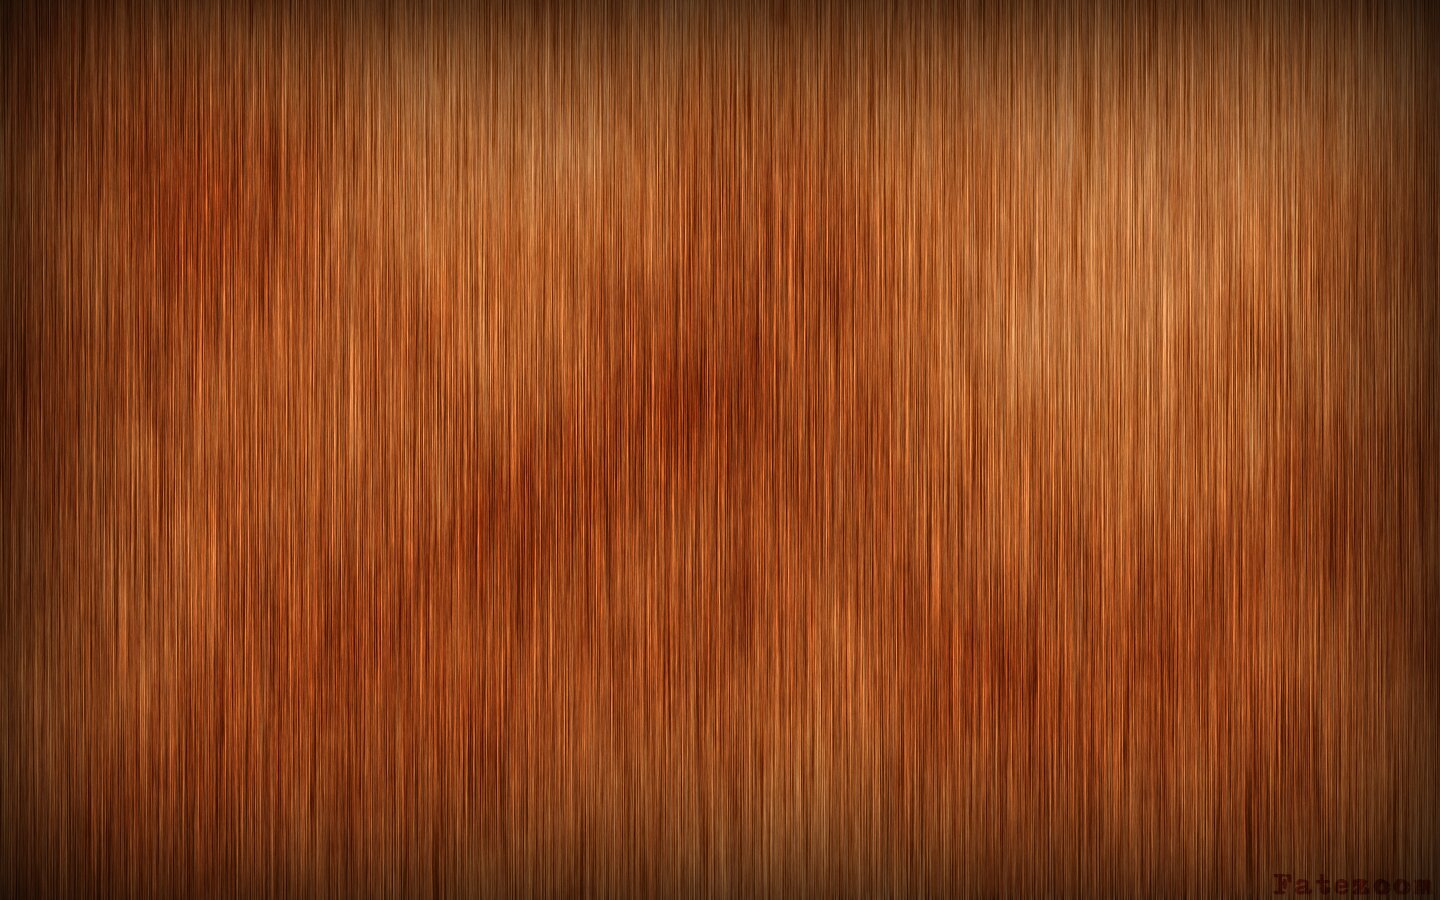 Techcredo wood texture wallpaper collection for android - Wood design image ...